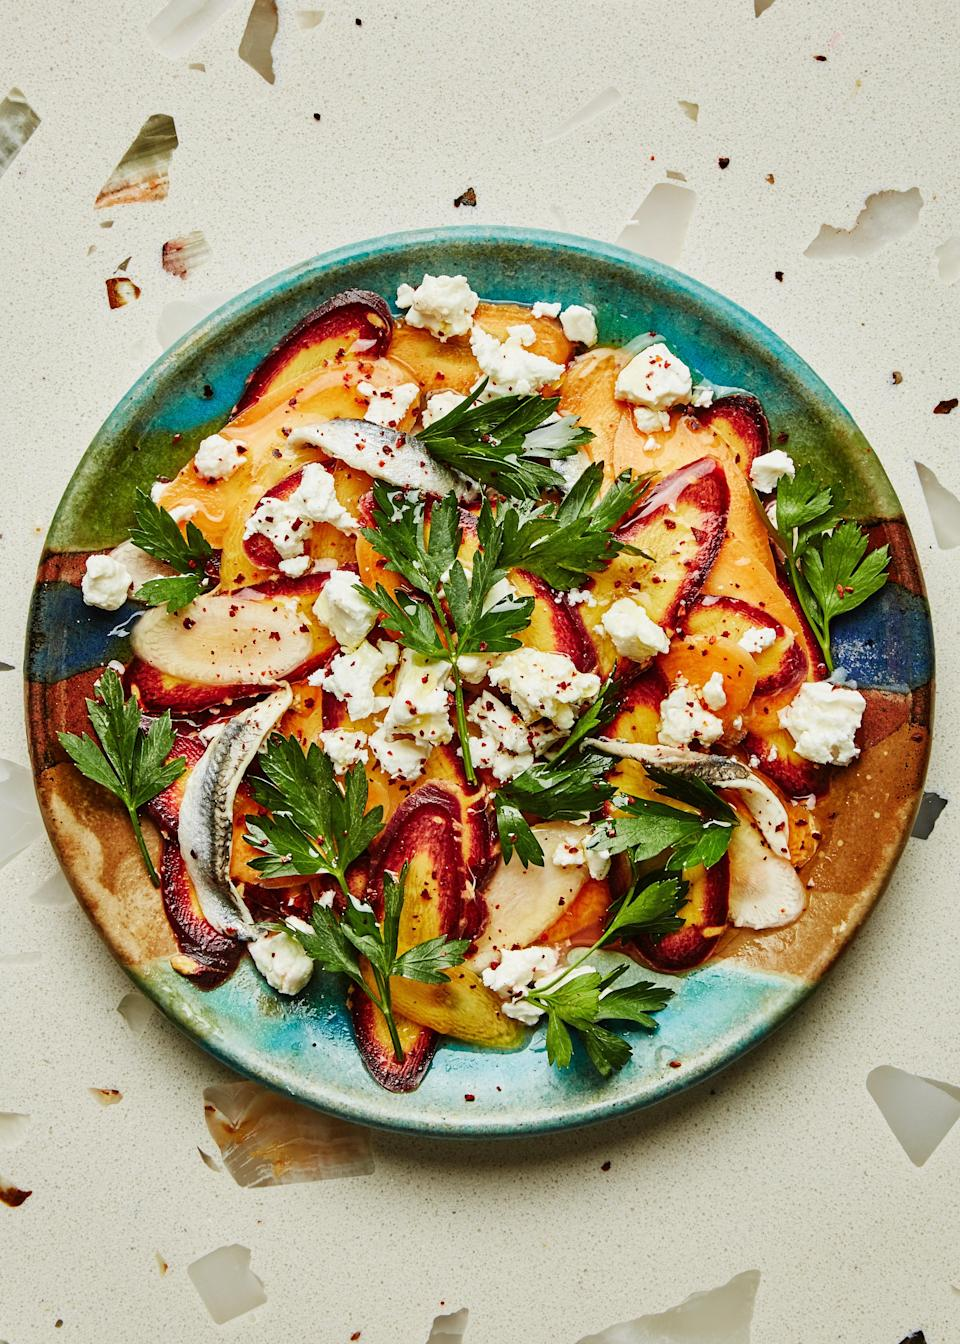 "The marinated white anchovies make this carrot salad stand out by adding a nice vinegary bite (if you opt for regular anchovies, season with less salt), and those little fishes are good for you, too! <a href=""https://www.bonappetit.com/recipe/carrot-salad-with-feta-and-anchovies?mbid=synd_yahoo_rss"" rel=""nofollow noopener"" target=""_blank"" data-ylk=""slk:See recipe."" class=""link rapid-noclick-resp"">See recipe.</a>"